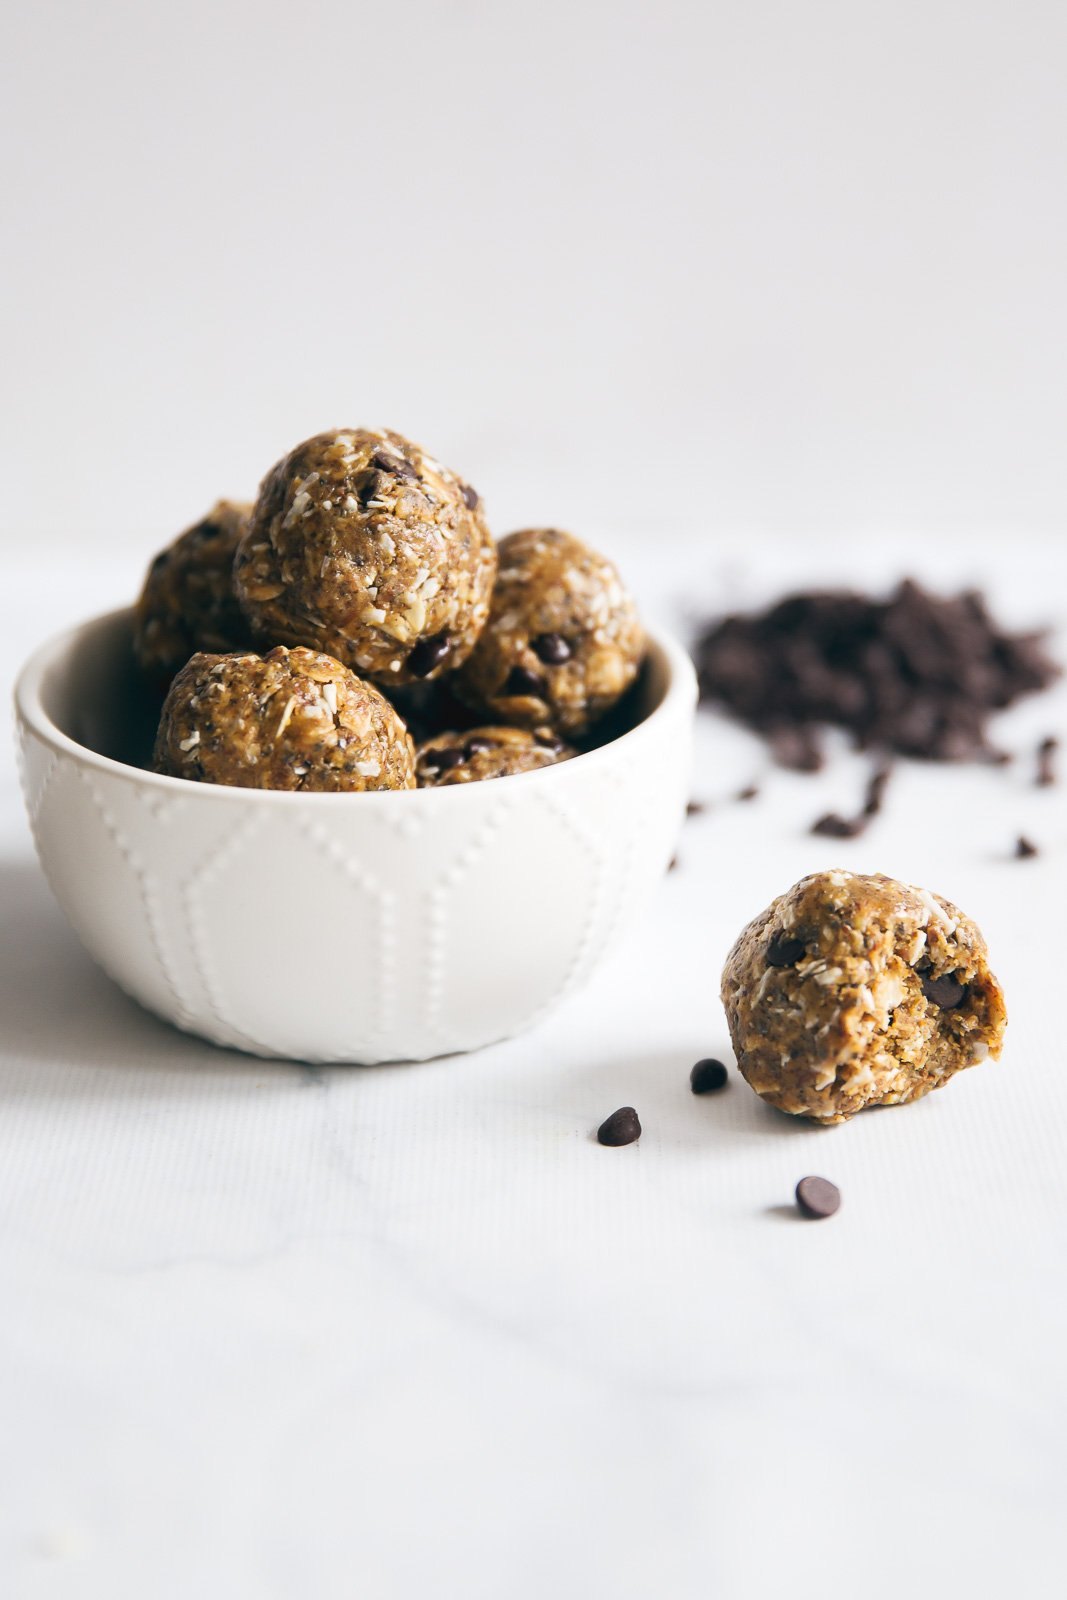 Fiber & protein packed peanut butter energy bites with amazing chewy texture! Loaded with nutritious ingredients like flaxseed, chia seeds, coconut, oats, & more!